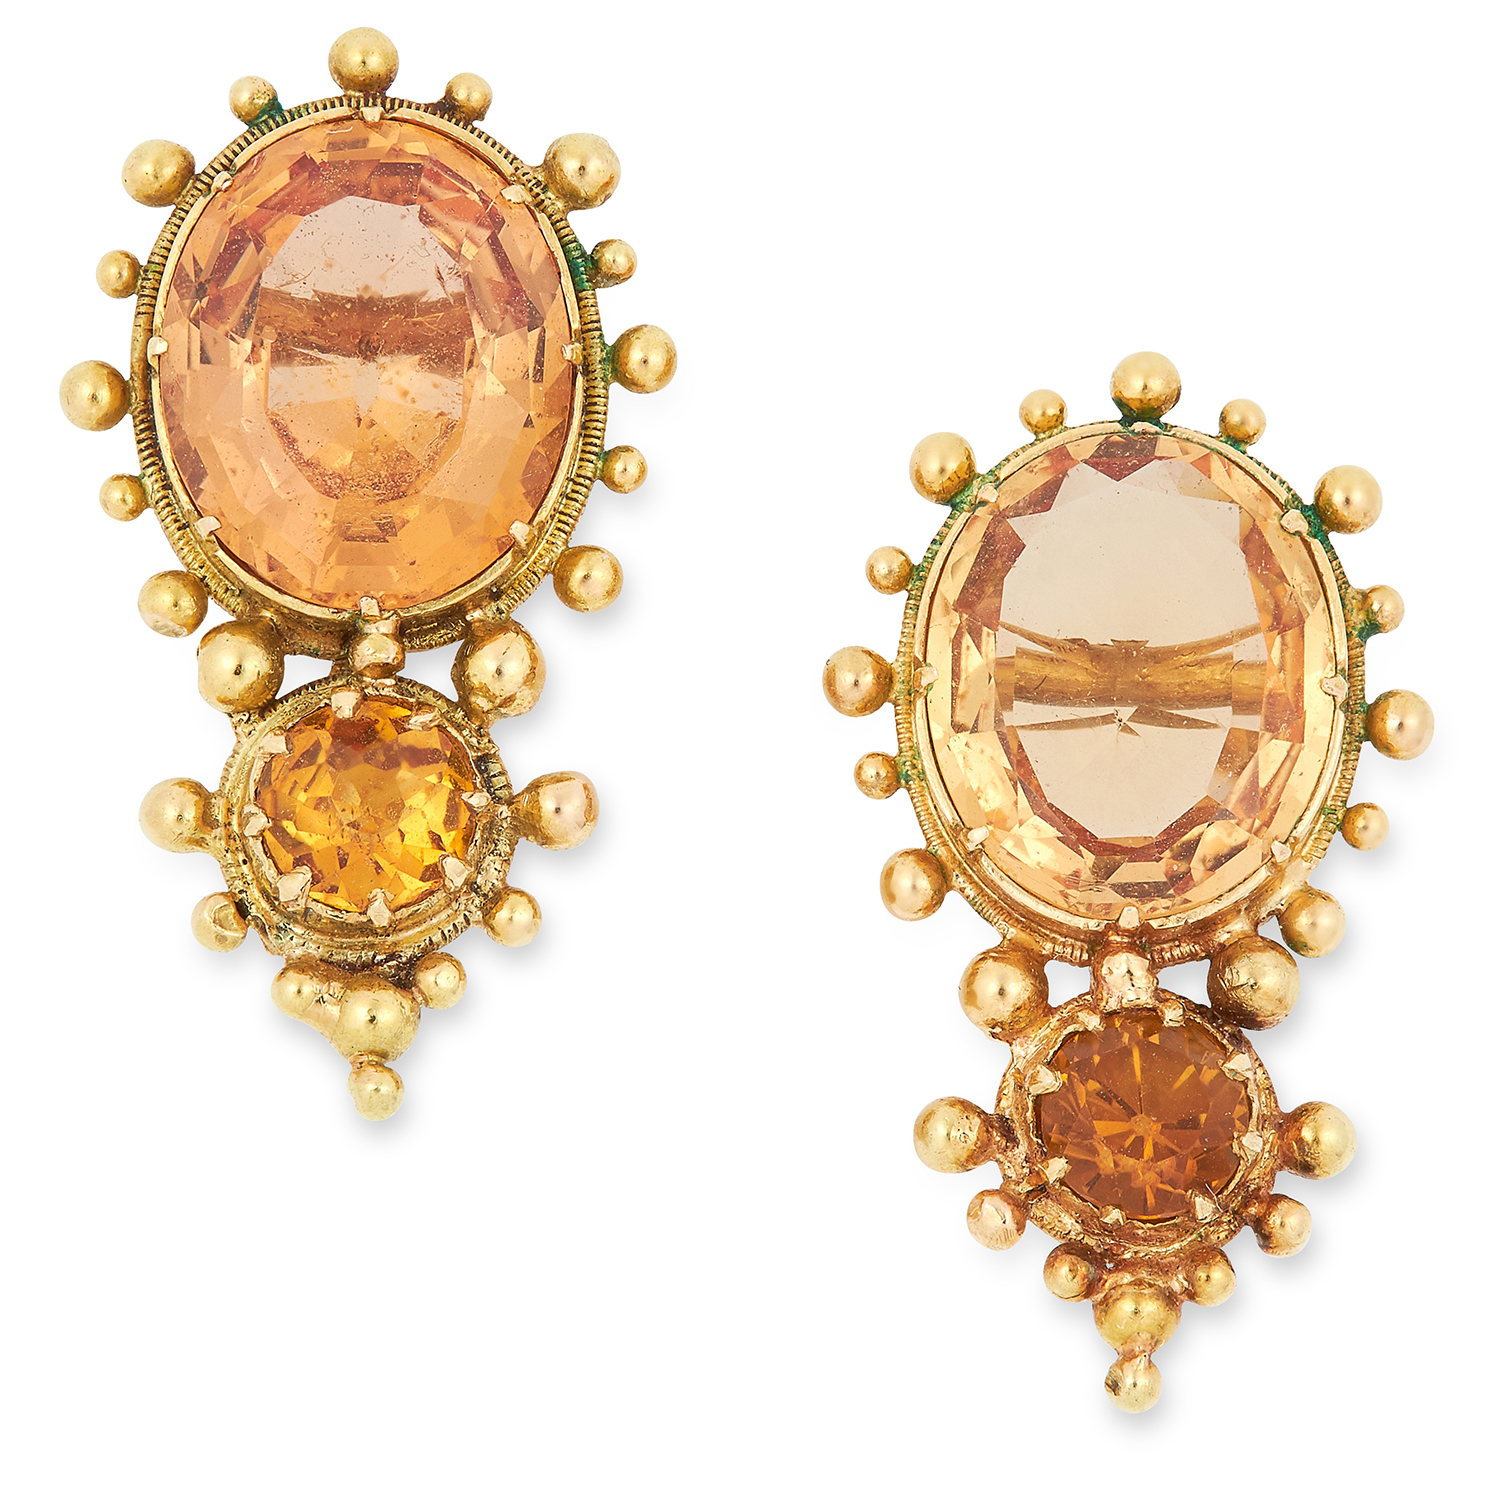 AN ANTIQUE IMPERIAL TOPAZ NECKLACE AND CLIP EARRING SUITE, 19TH CENTURY set with oval, round and - Image 2 of 2